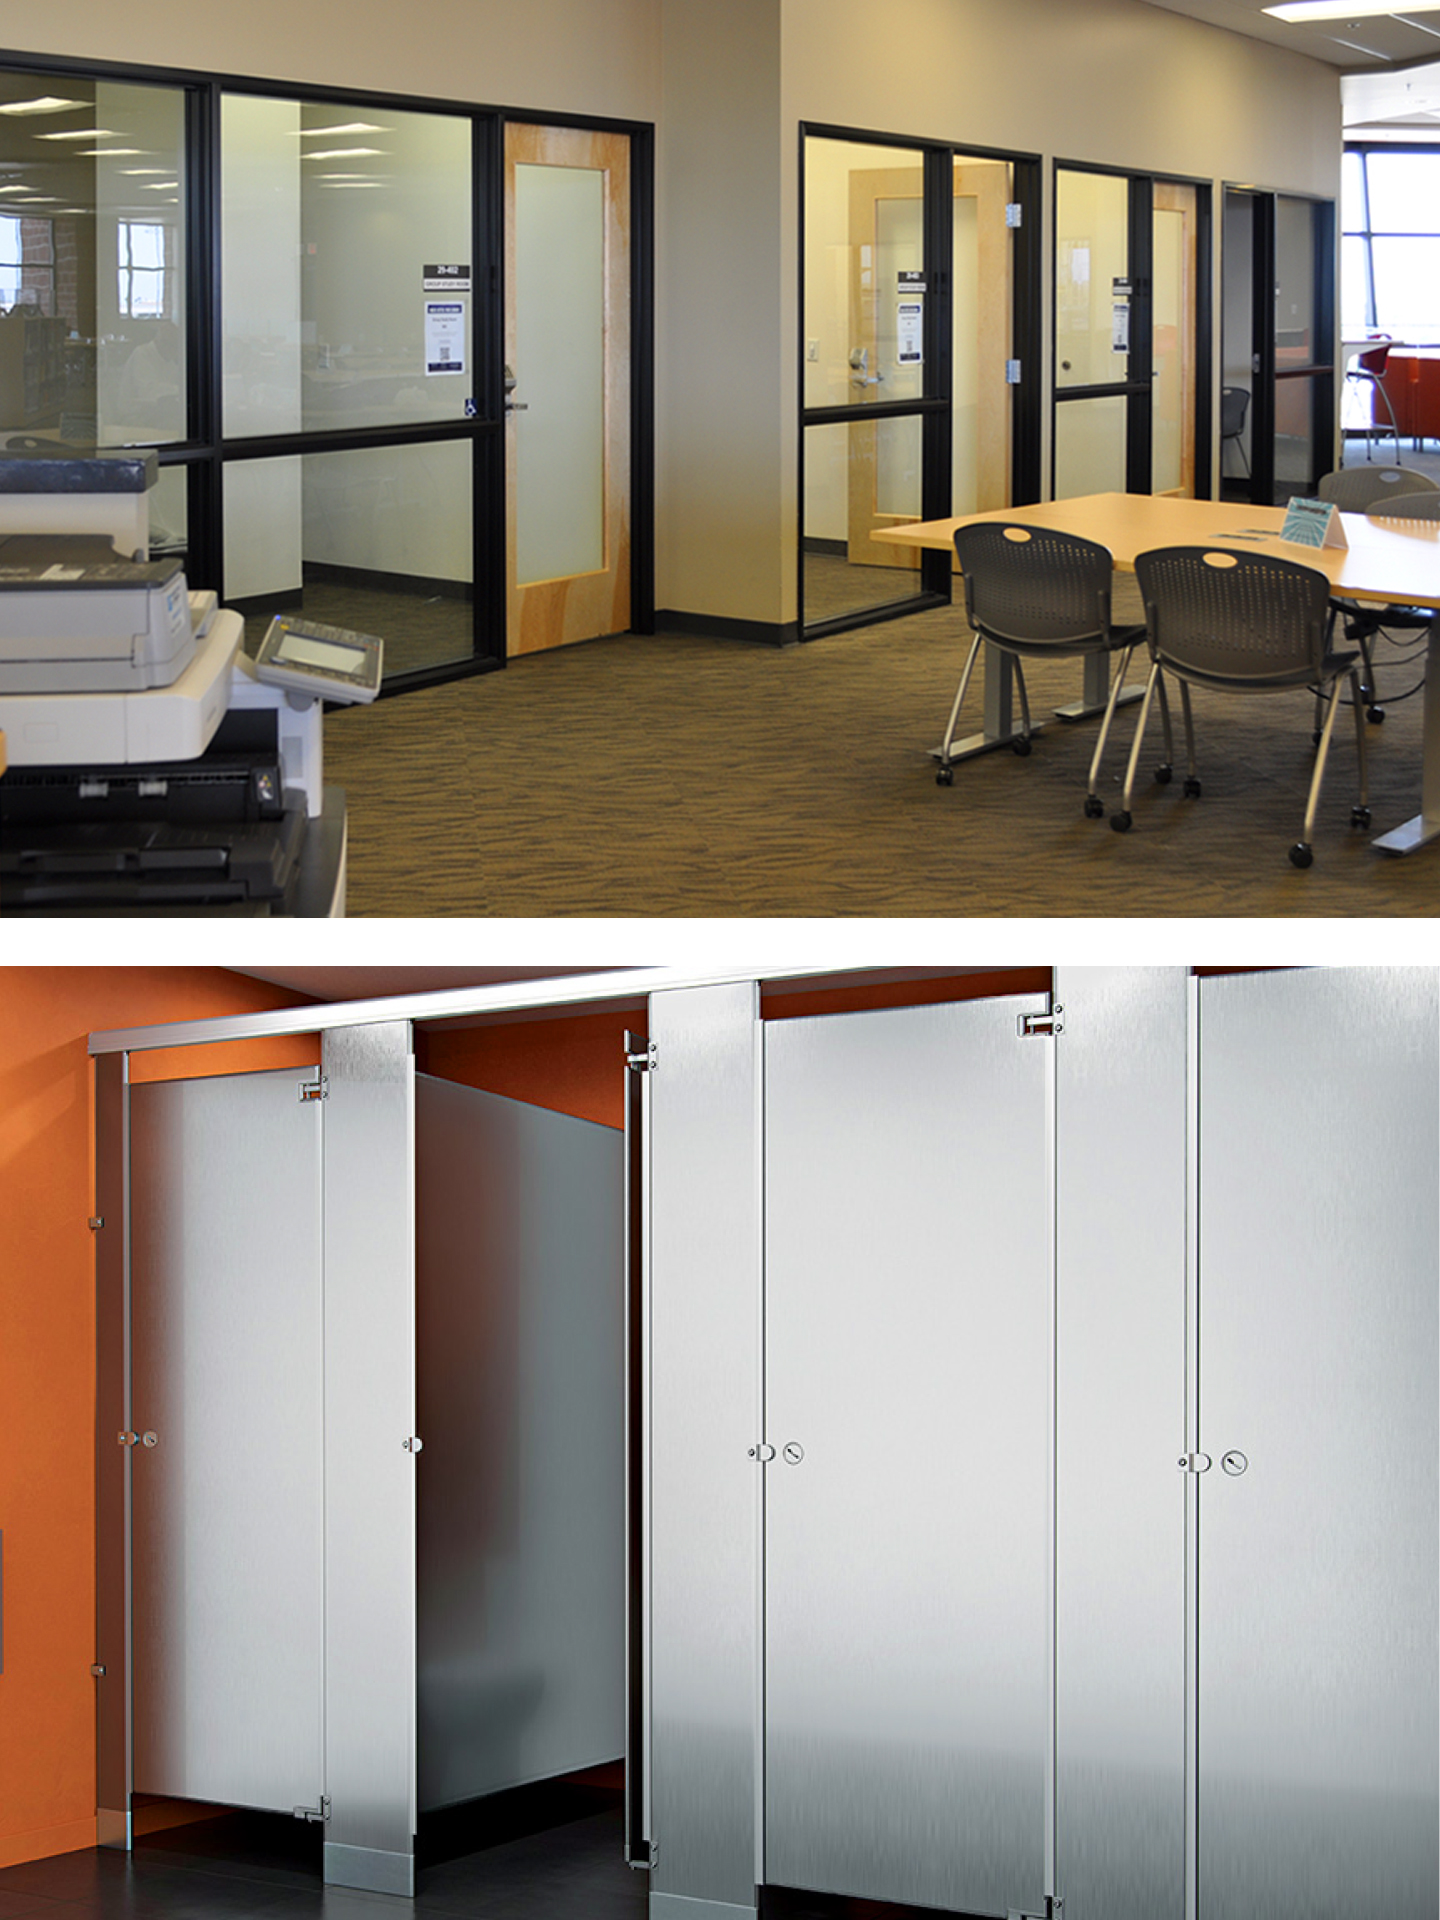 ... Topeka Foundry Commercial Door Company focuses on commercial building structures including hospitals health care facilities educational institutions ... & Topeka Foundry Commercial Door Company \u2013 A premier distributor of ...